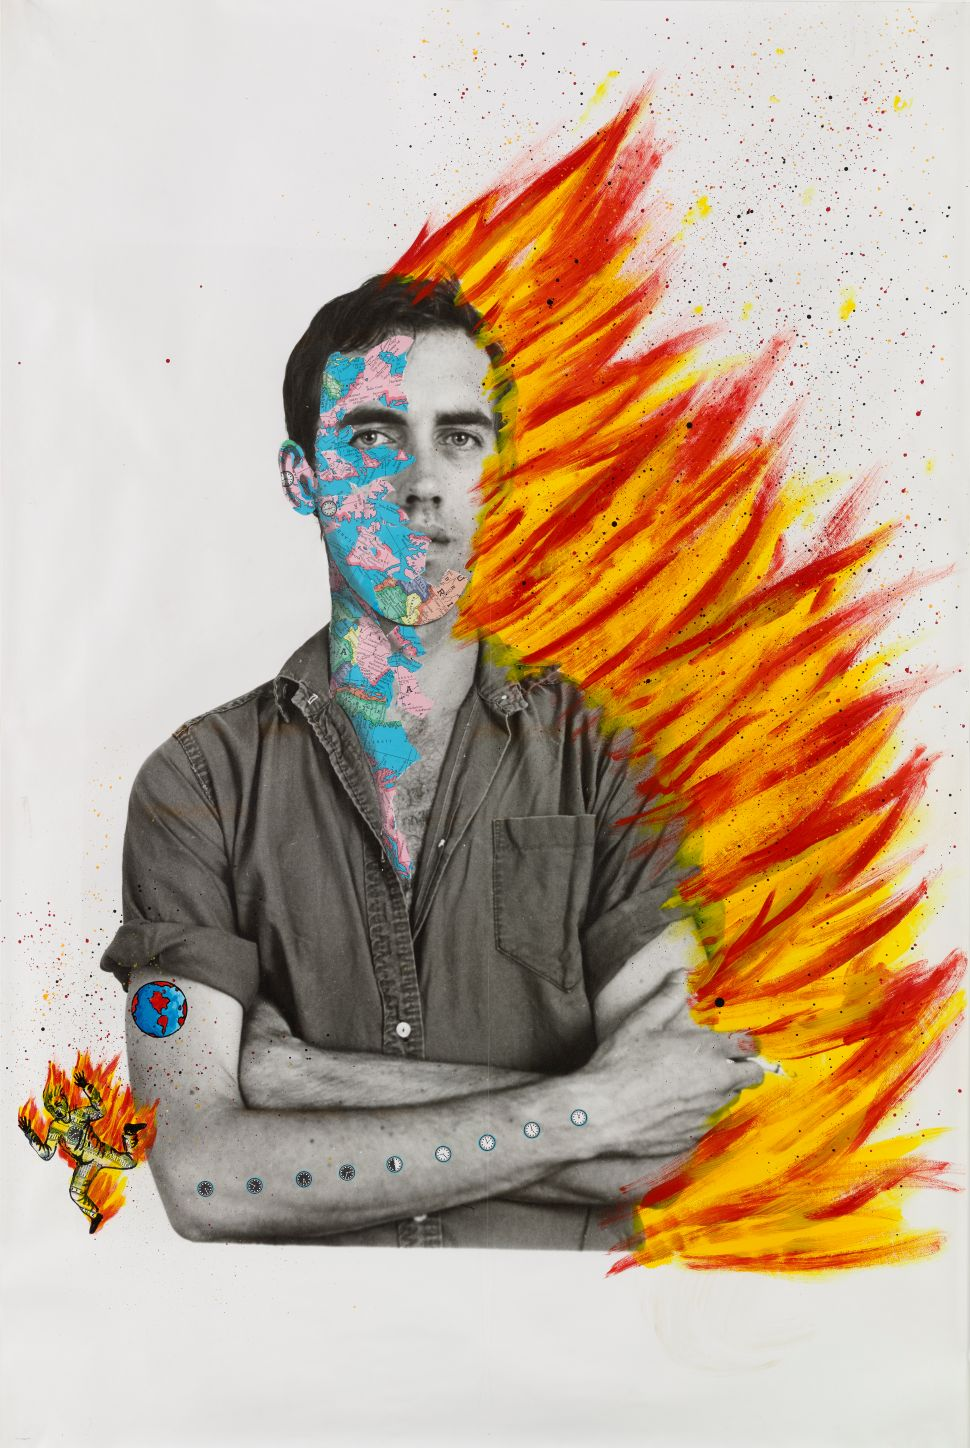 The Whitney's David Wojnarowicz Exhibition Is Angry and Honest